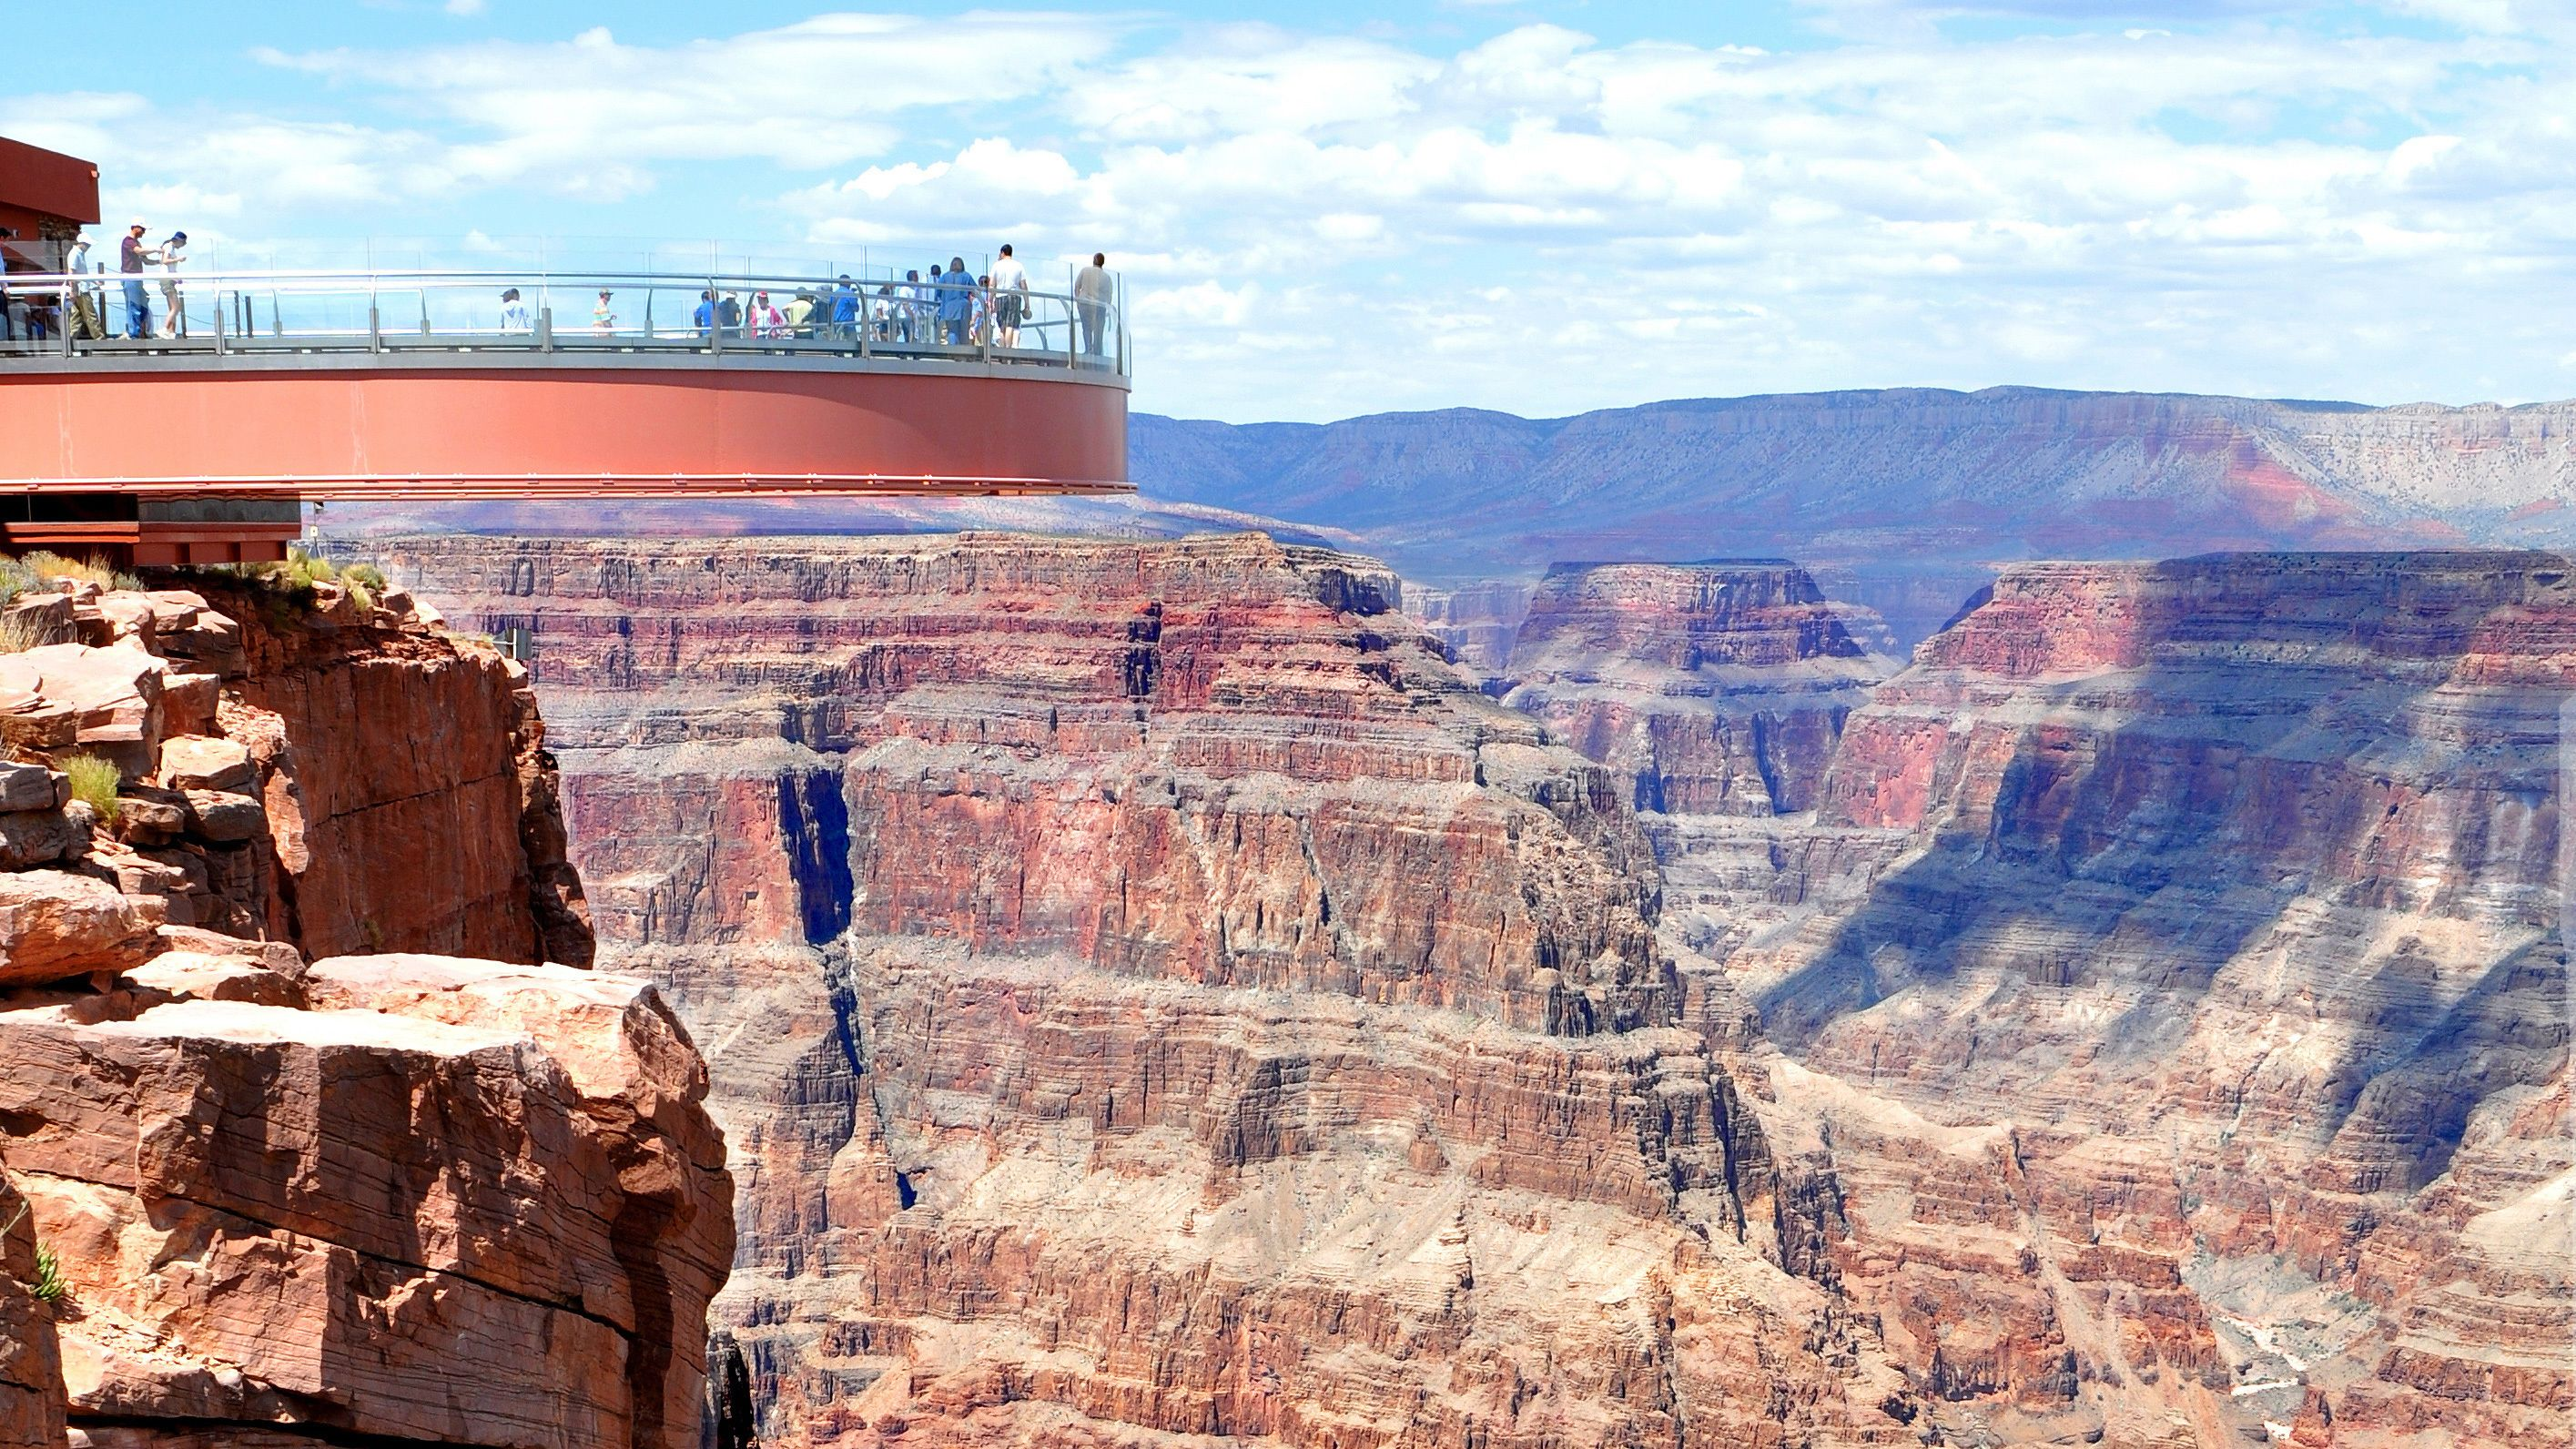 Grand Canyon Skywalk offers a once of a lifetime view down the canyon walls